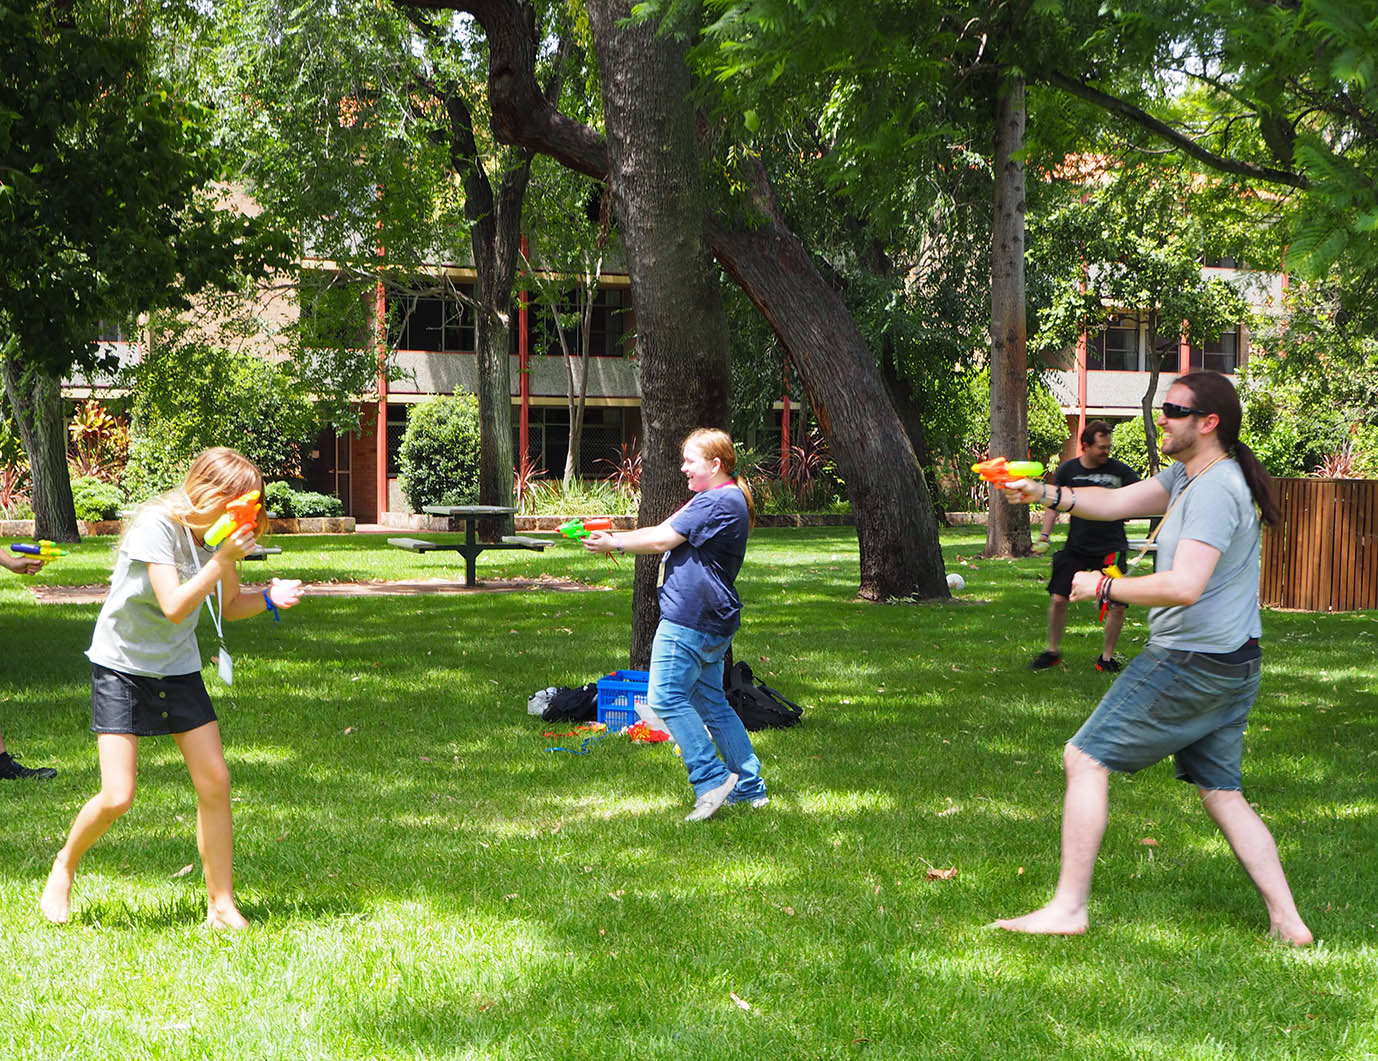 Capture the flag (aka water fights) at GenghisCon 2016